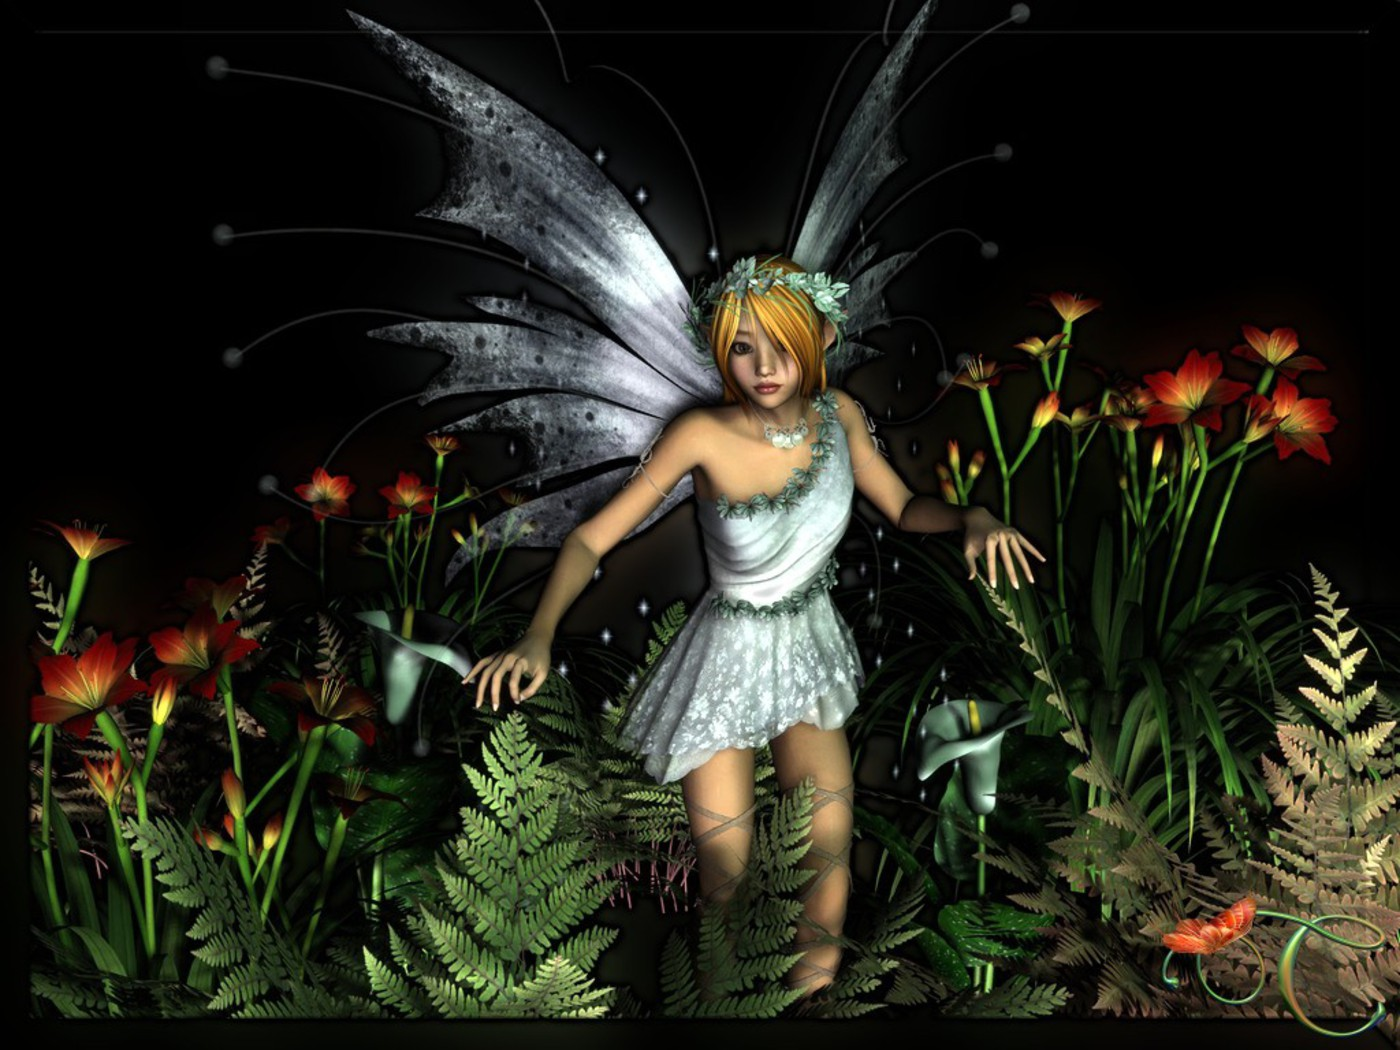 HD wallpapers Download 3D Fairy angels HD wallpapers 1400x1050 1400x1050